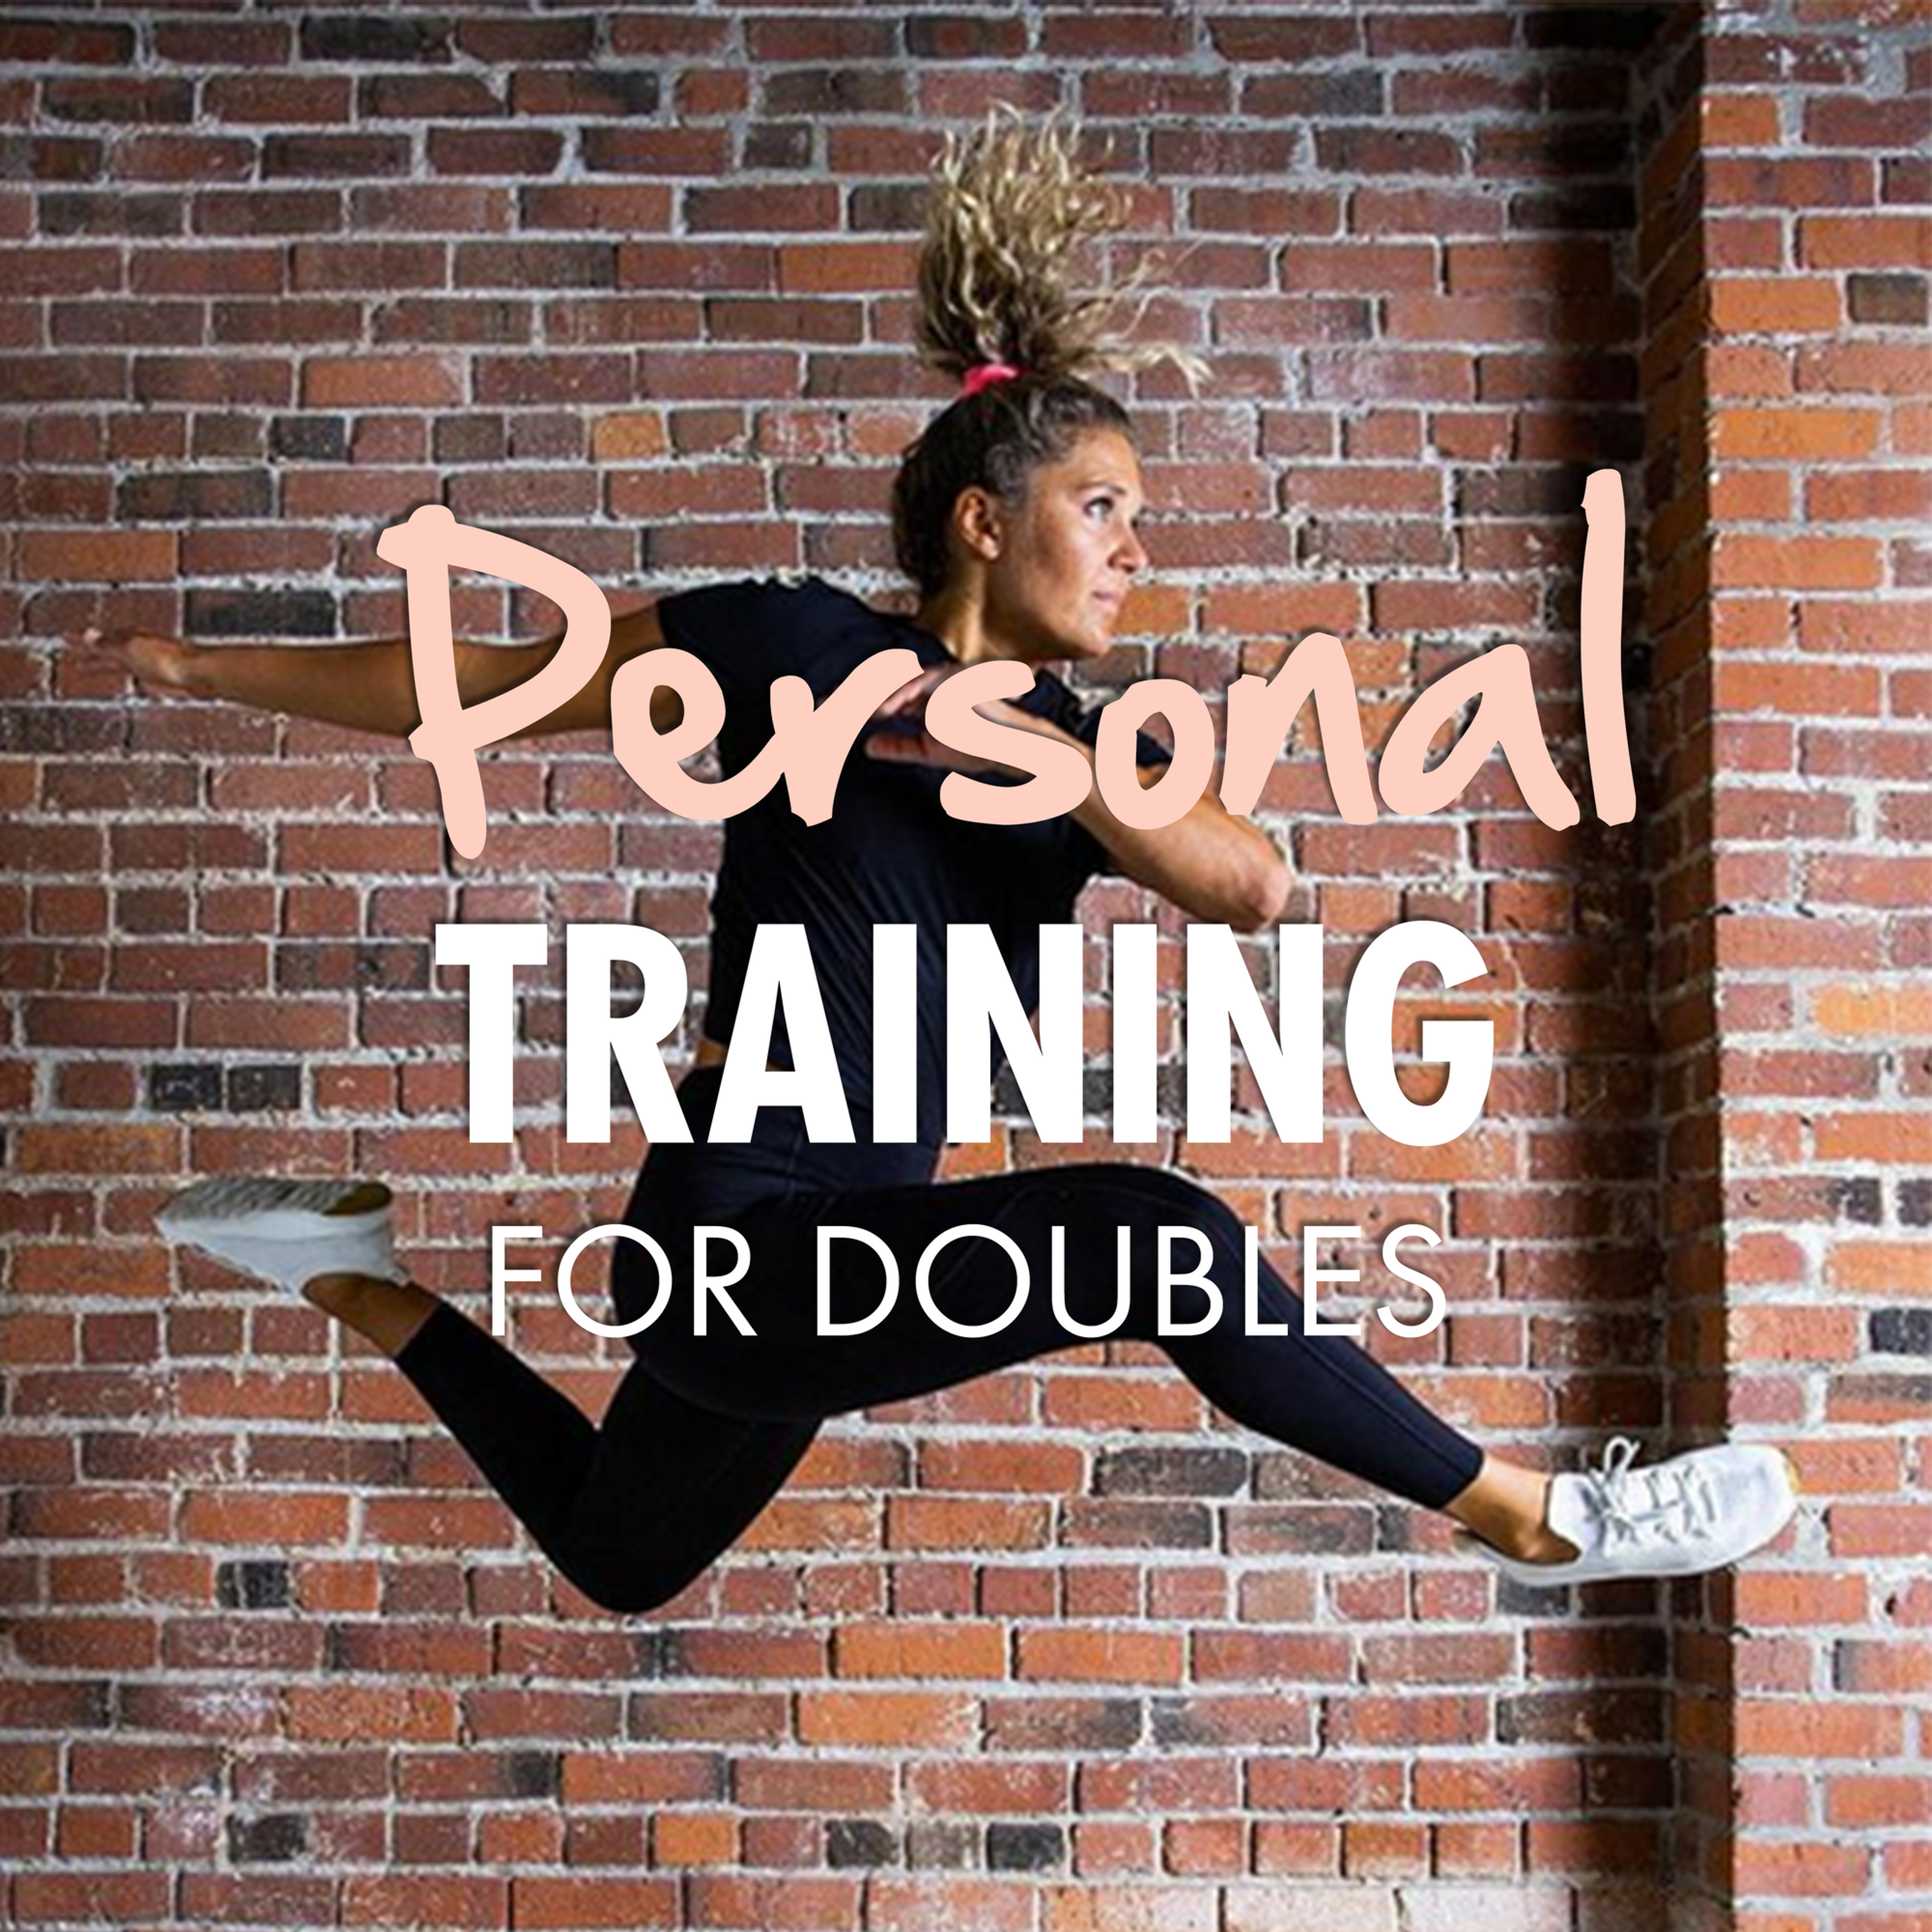 Personal Training for Doubles